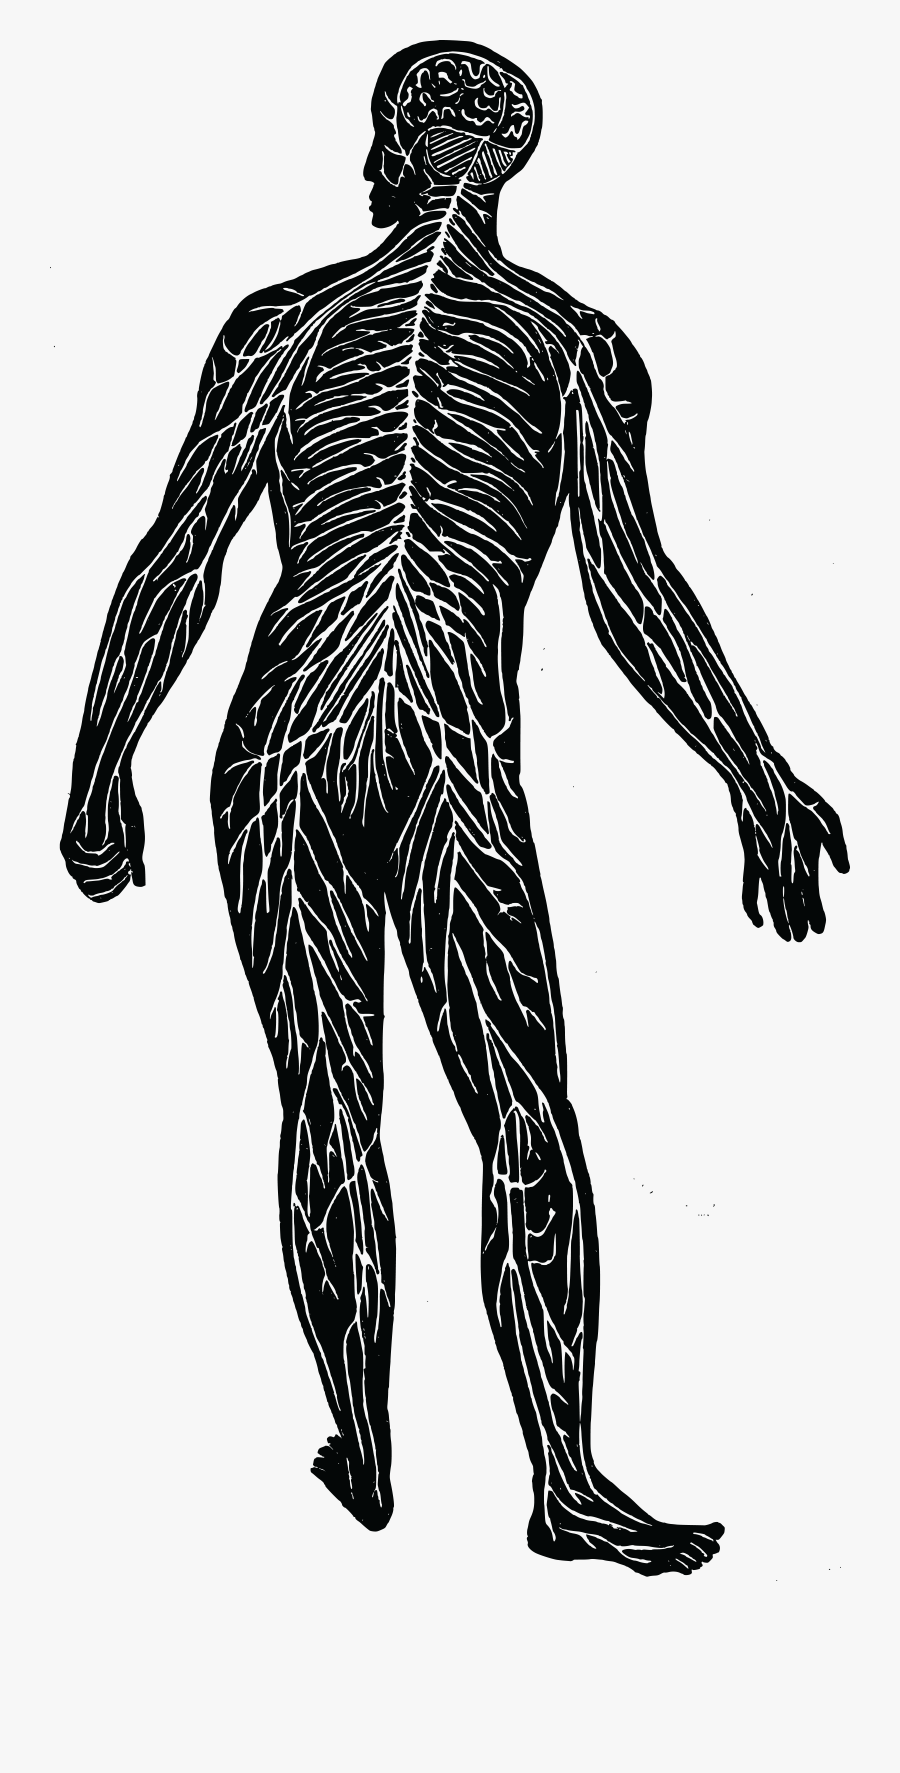 Free Of The - Nerve System Clipart, Transparent Clipart